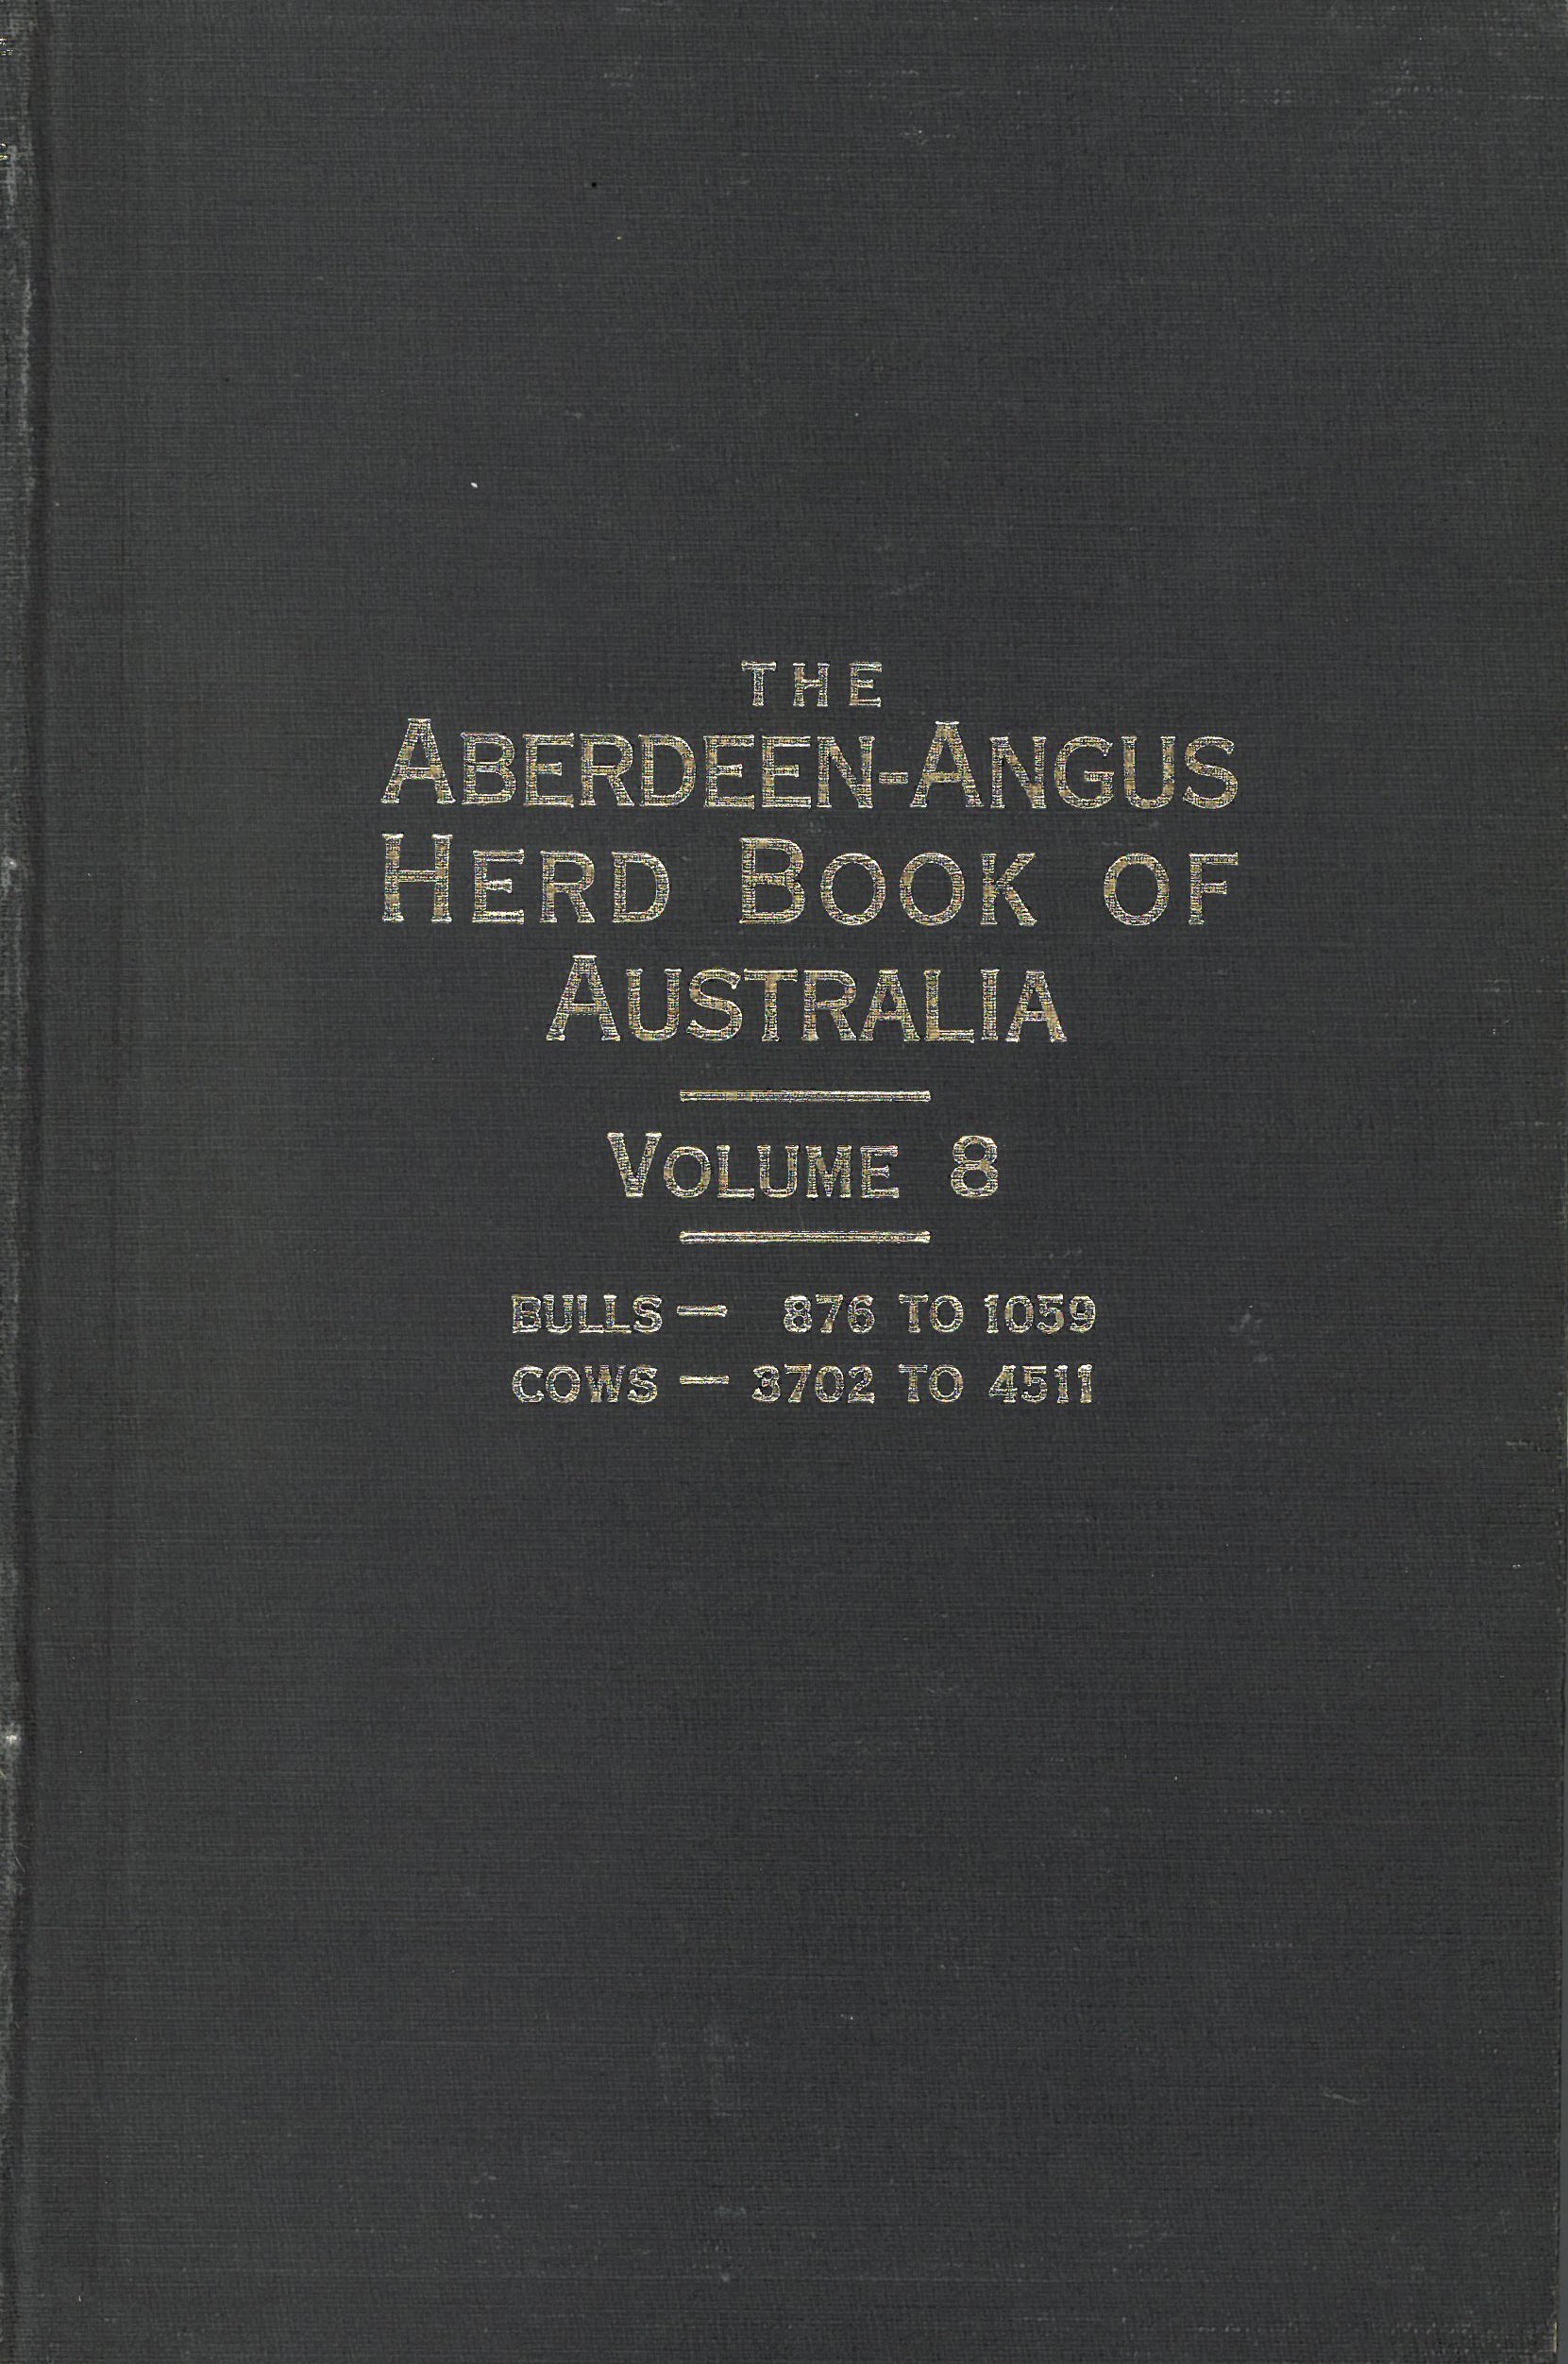 The Aberdeen-Angus Herd Book 8 Cover